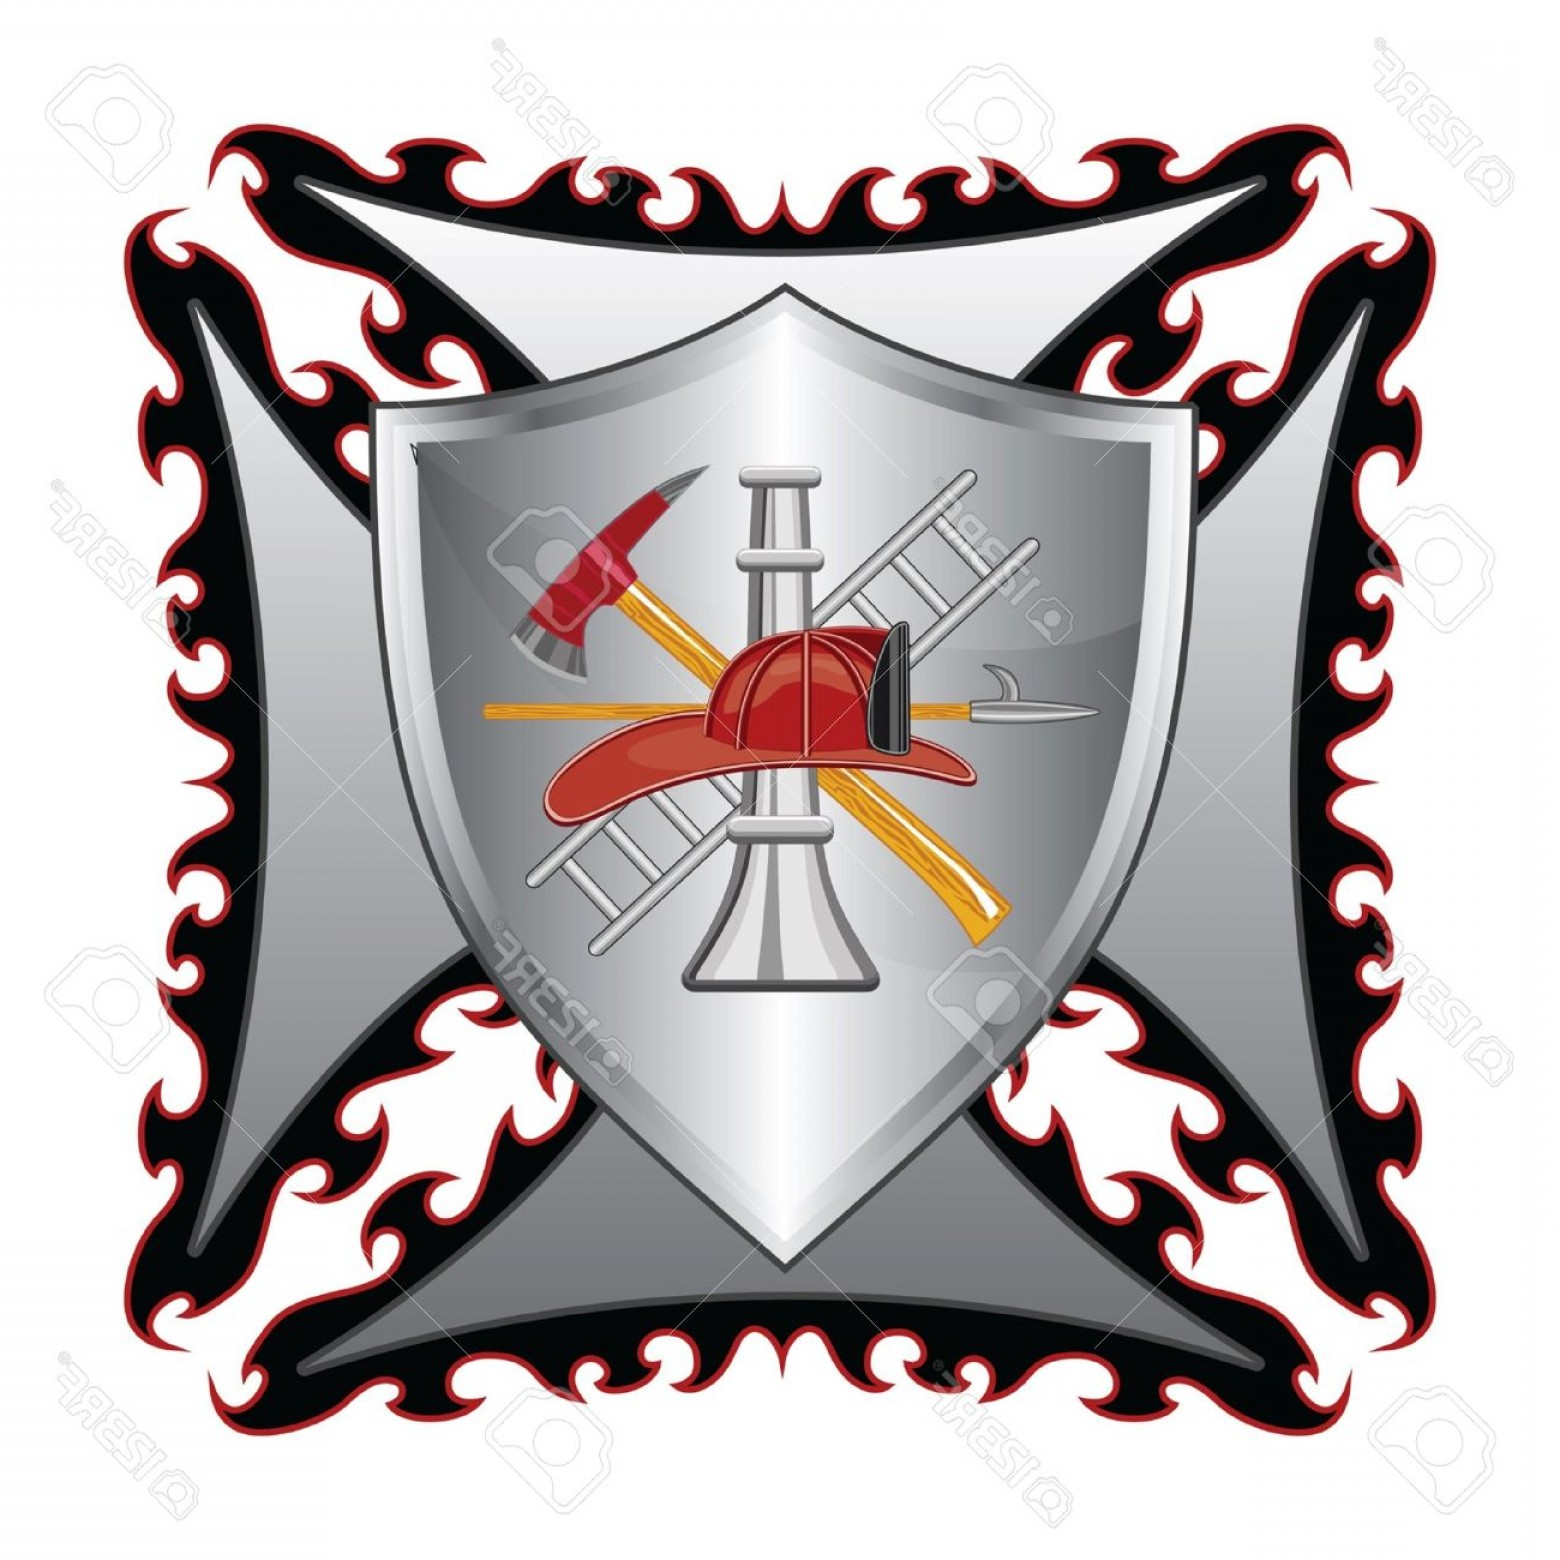 Fire Maltese Vector: Photofirefighter Cross With Shield Is An Illustration Of A Fire Department Or Firefighteres Maltese Cross